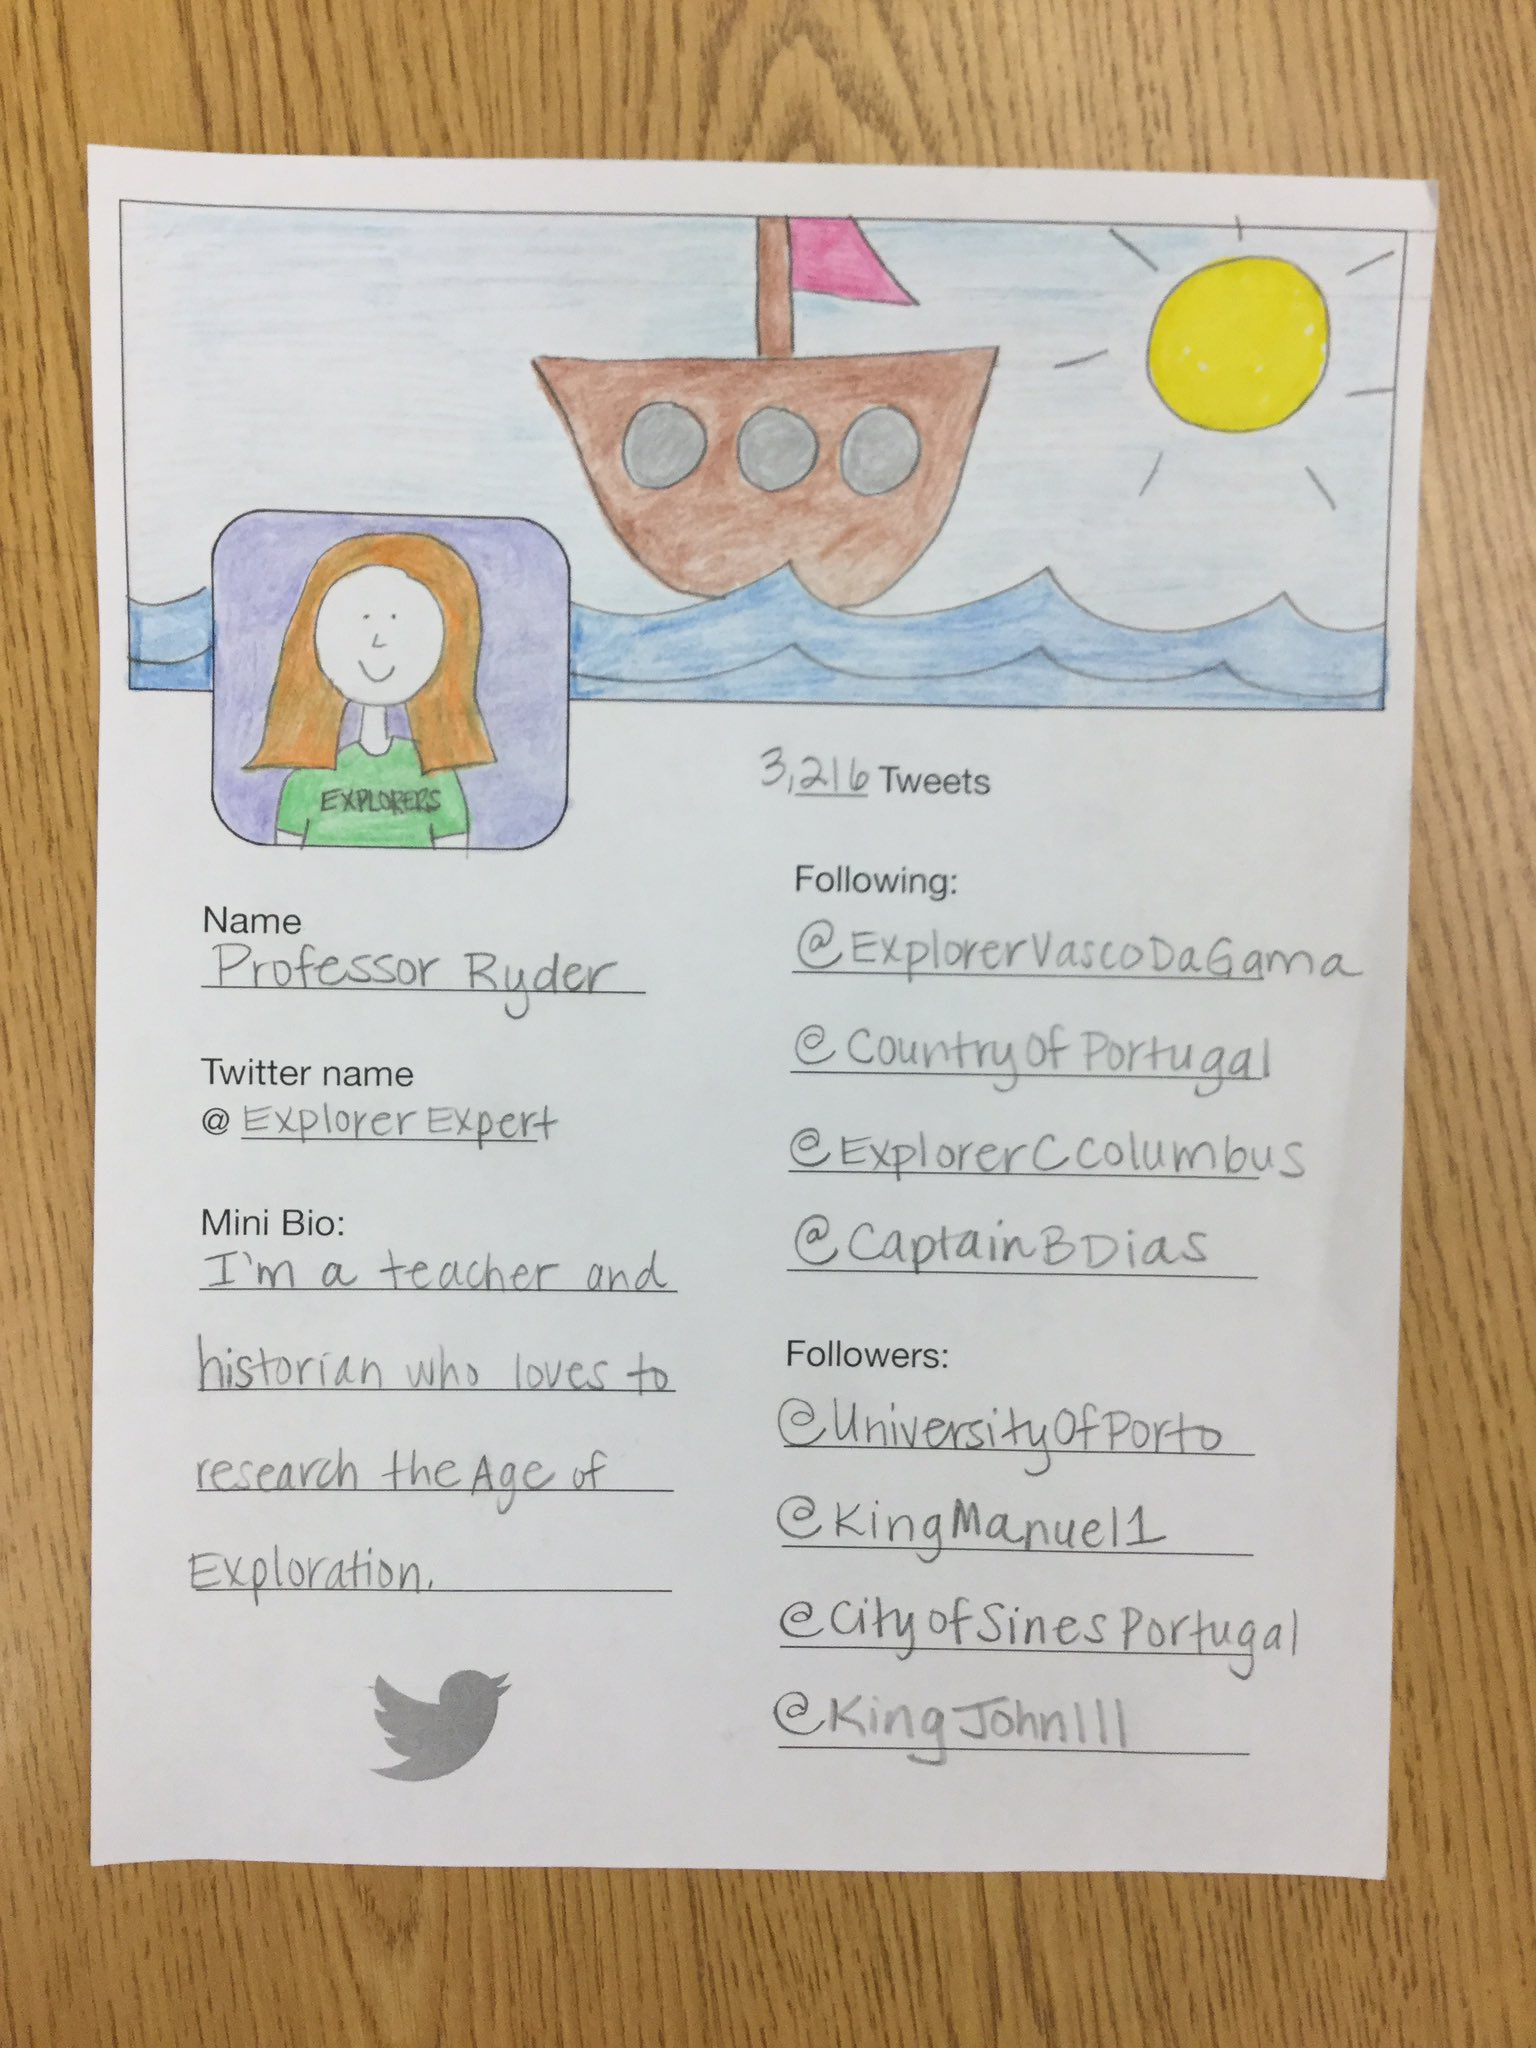 Introduced products for the explorer unit. Instead of traditional reports, Ss are creating fake paper Twitter profiles & tweets. #dg58learns https://t.co/XJYWslJVHO